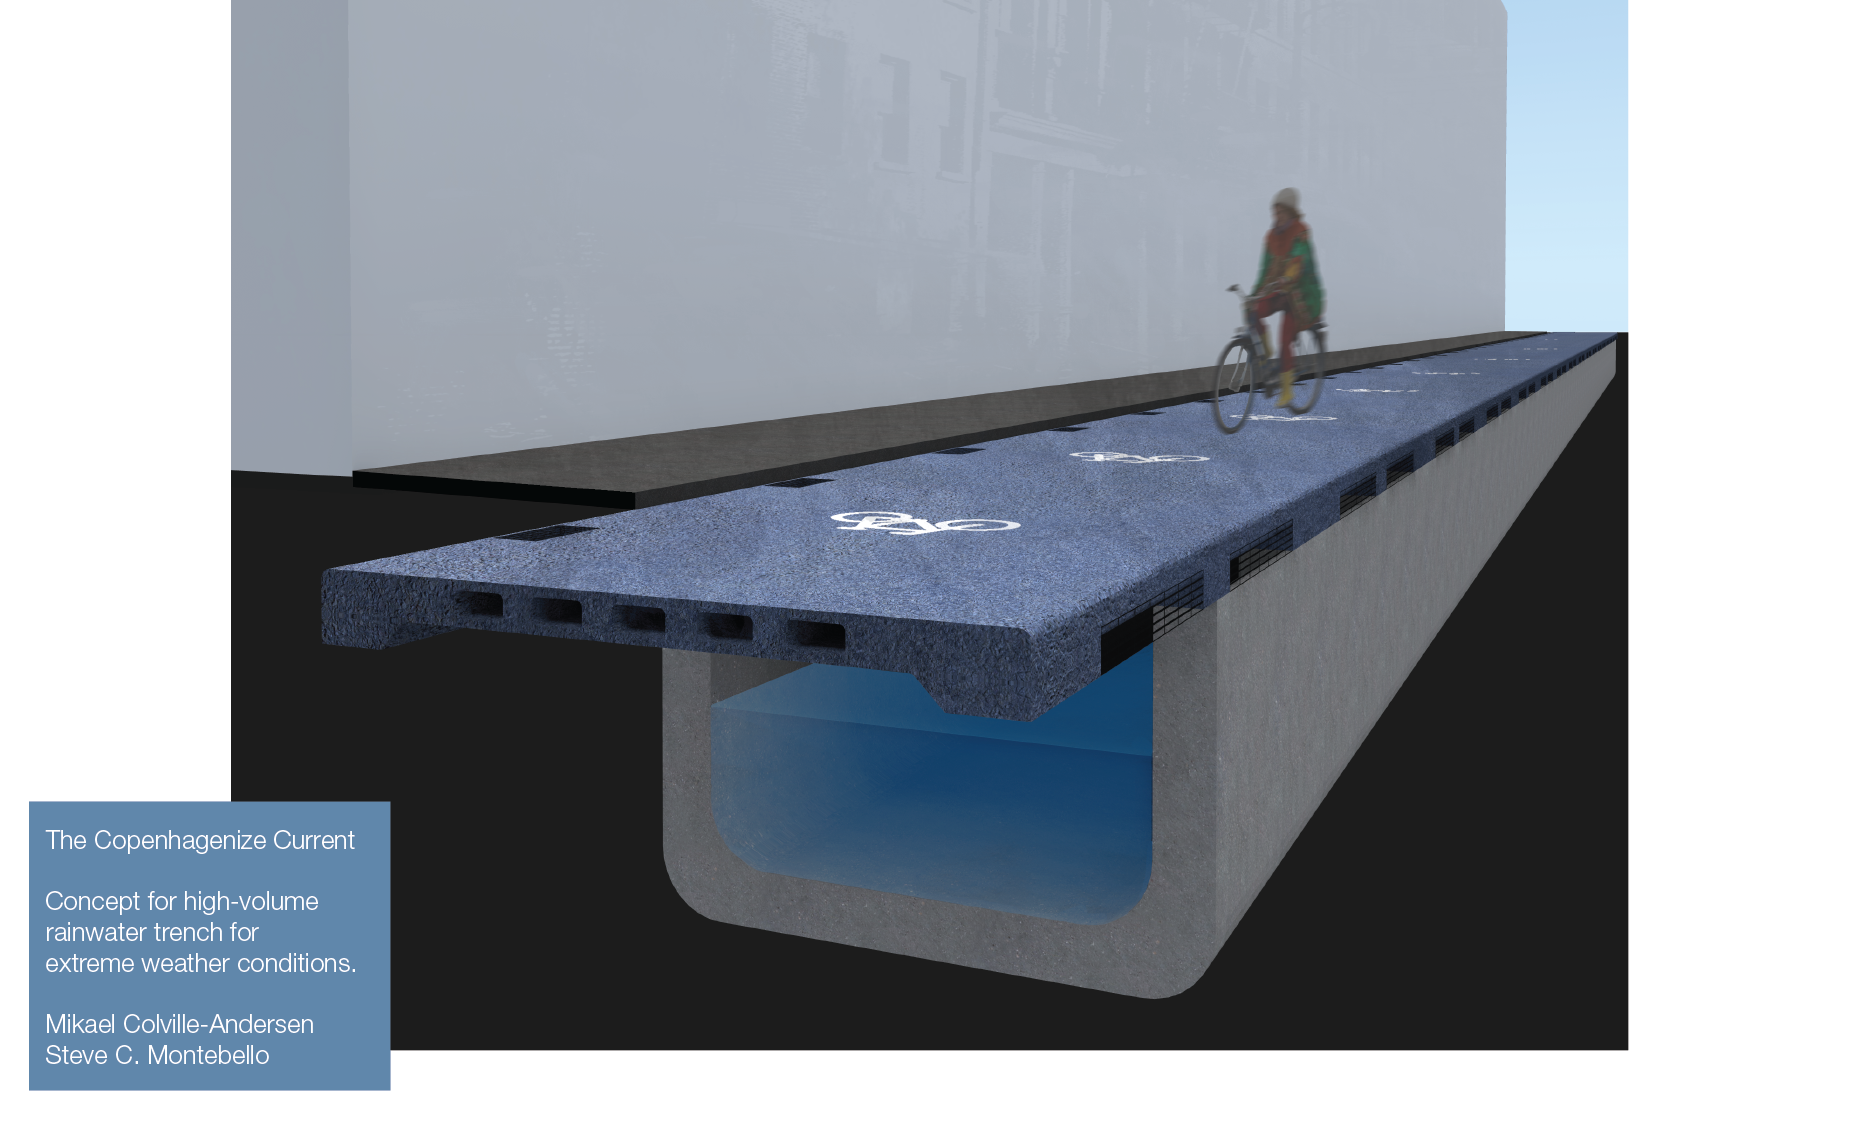 Stormwater Drainage Meets Bicyle Urbanism - Copenhagen, like many places, sufferes from excessive rainfall as a result of climate change. Flooded streets are a regular occurance. The sewers can't handle the volume. So how about a cut and cover solution to catch the stormwater, lead it away and create space for excellent bike infrastructure on top?Status: Concept